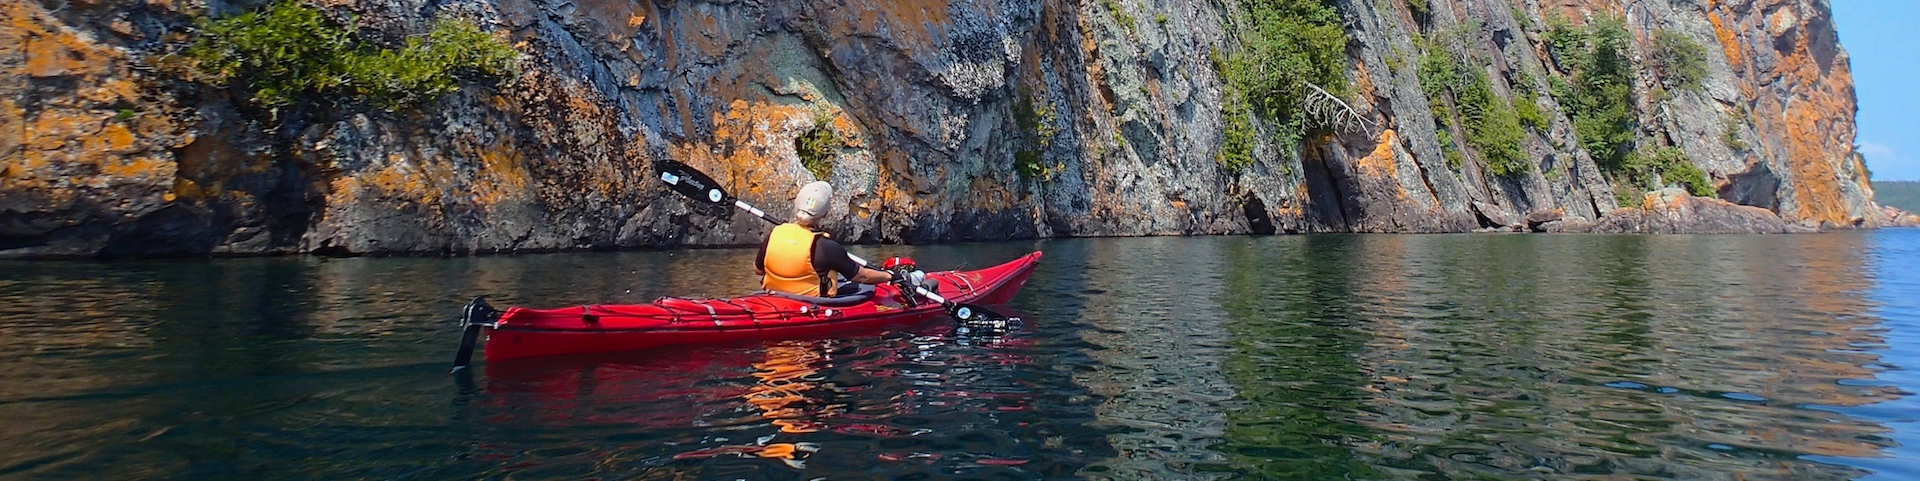 Sea Kayak the Spirit of Lake Superior Park by Naturally Superior Adventures - Image 325